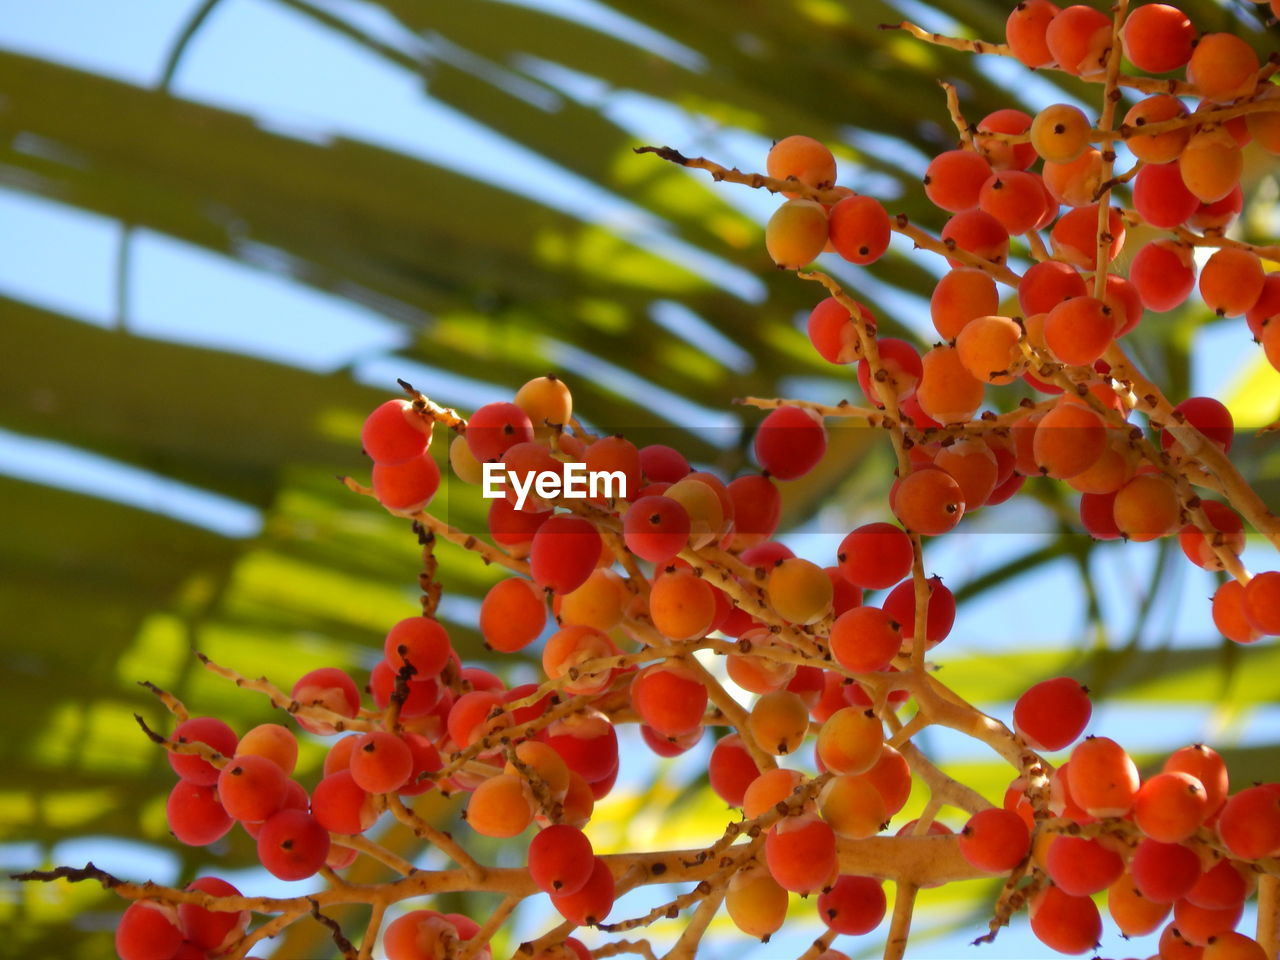 fruit, growth, food and drink, focus on foreground, tree, beauty in nature, nature, day, food, growing, outdoors, no people, red, low angle view, freshness, rowanberry, close-up, healthy eating, branch, sky